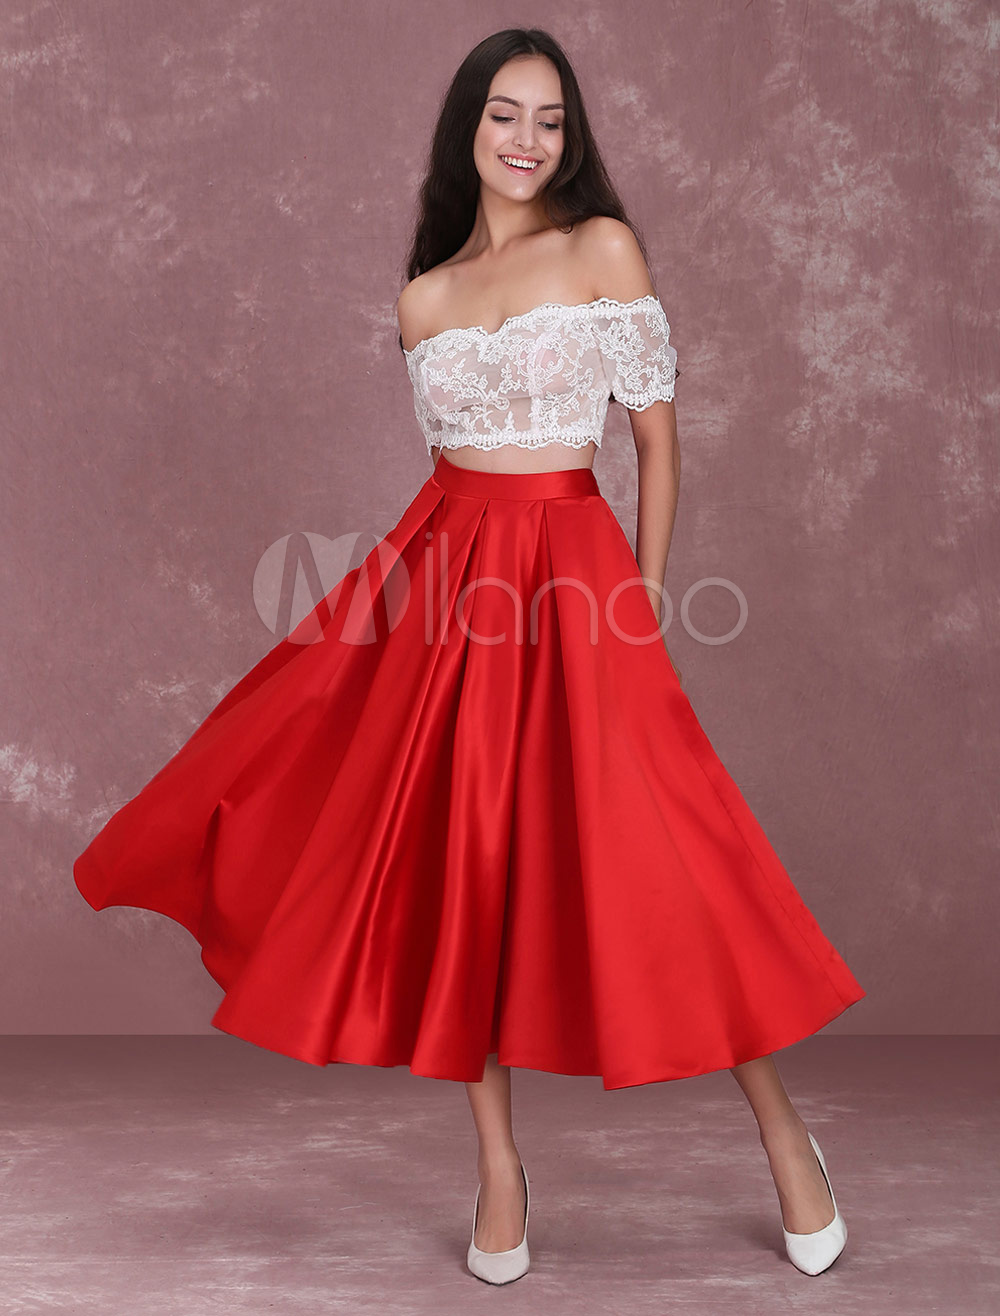 66f10f6921b 2 Piece Homecoming Dresses Off The Shoulder Lace Illusion Red Satin Skirt  Pleated Crop Top Prom ...